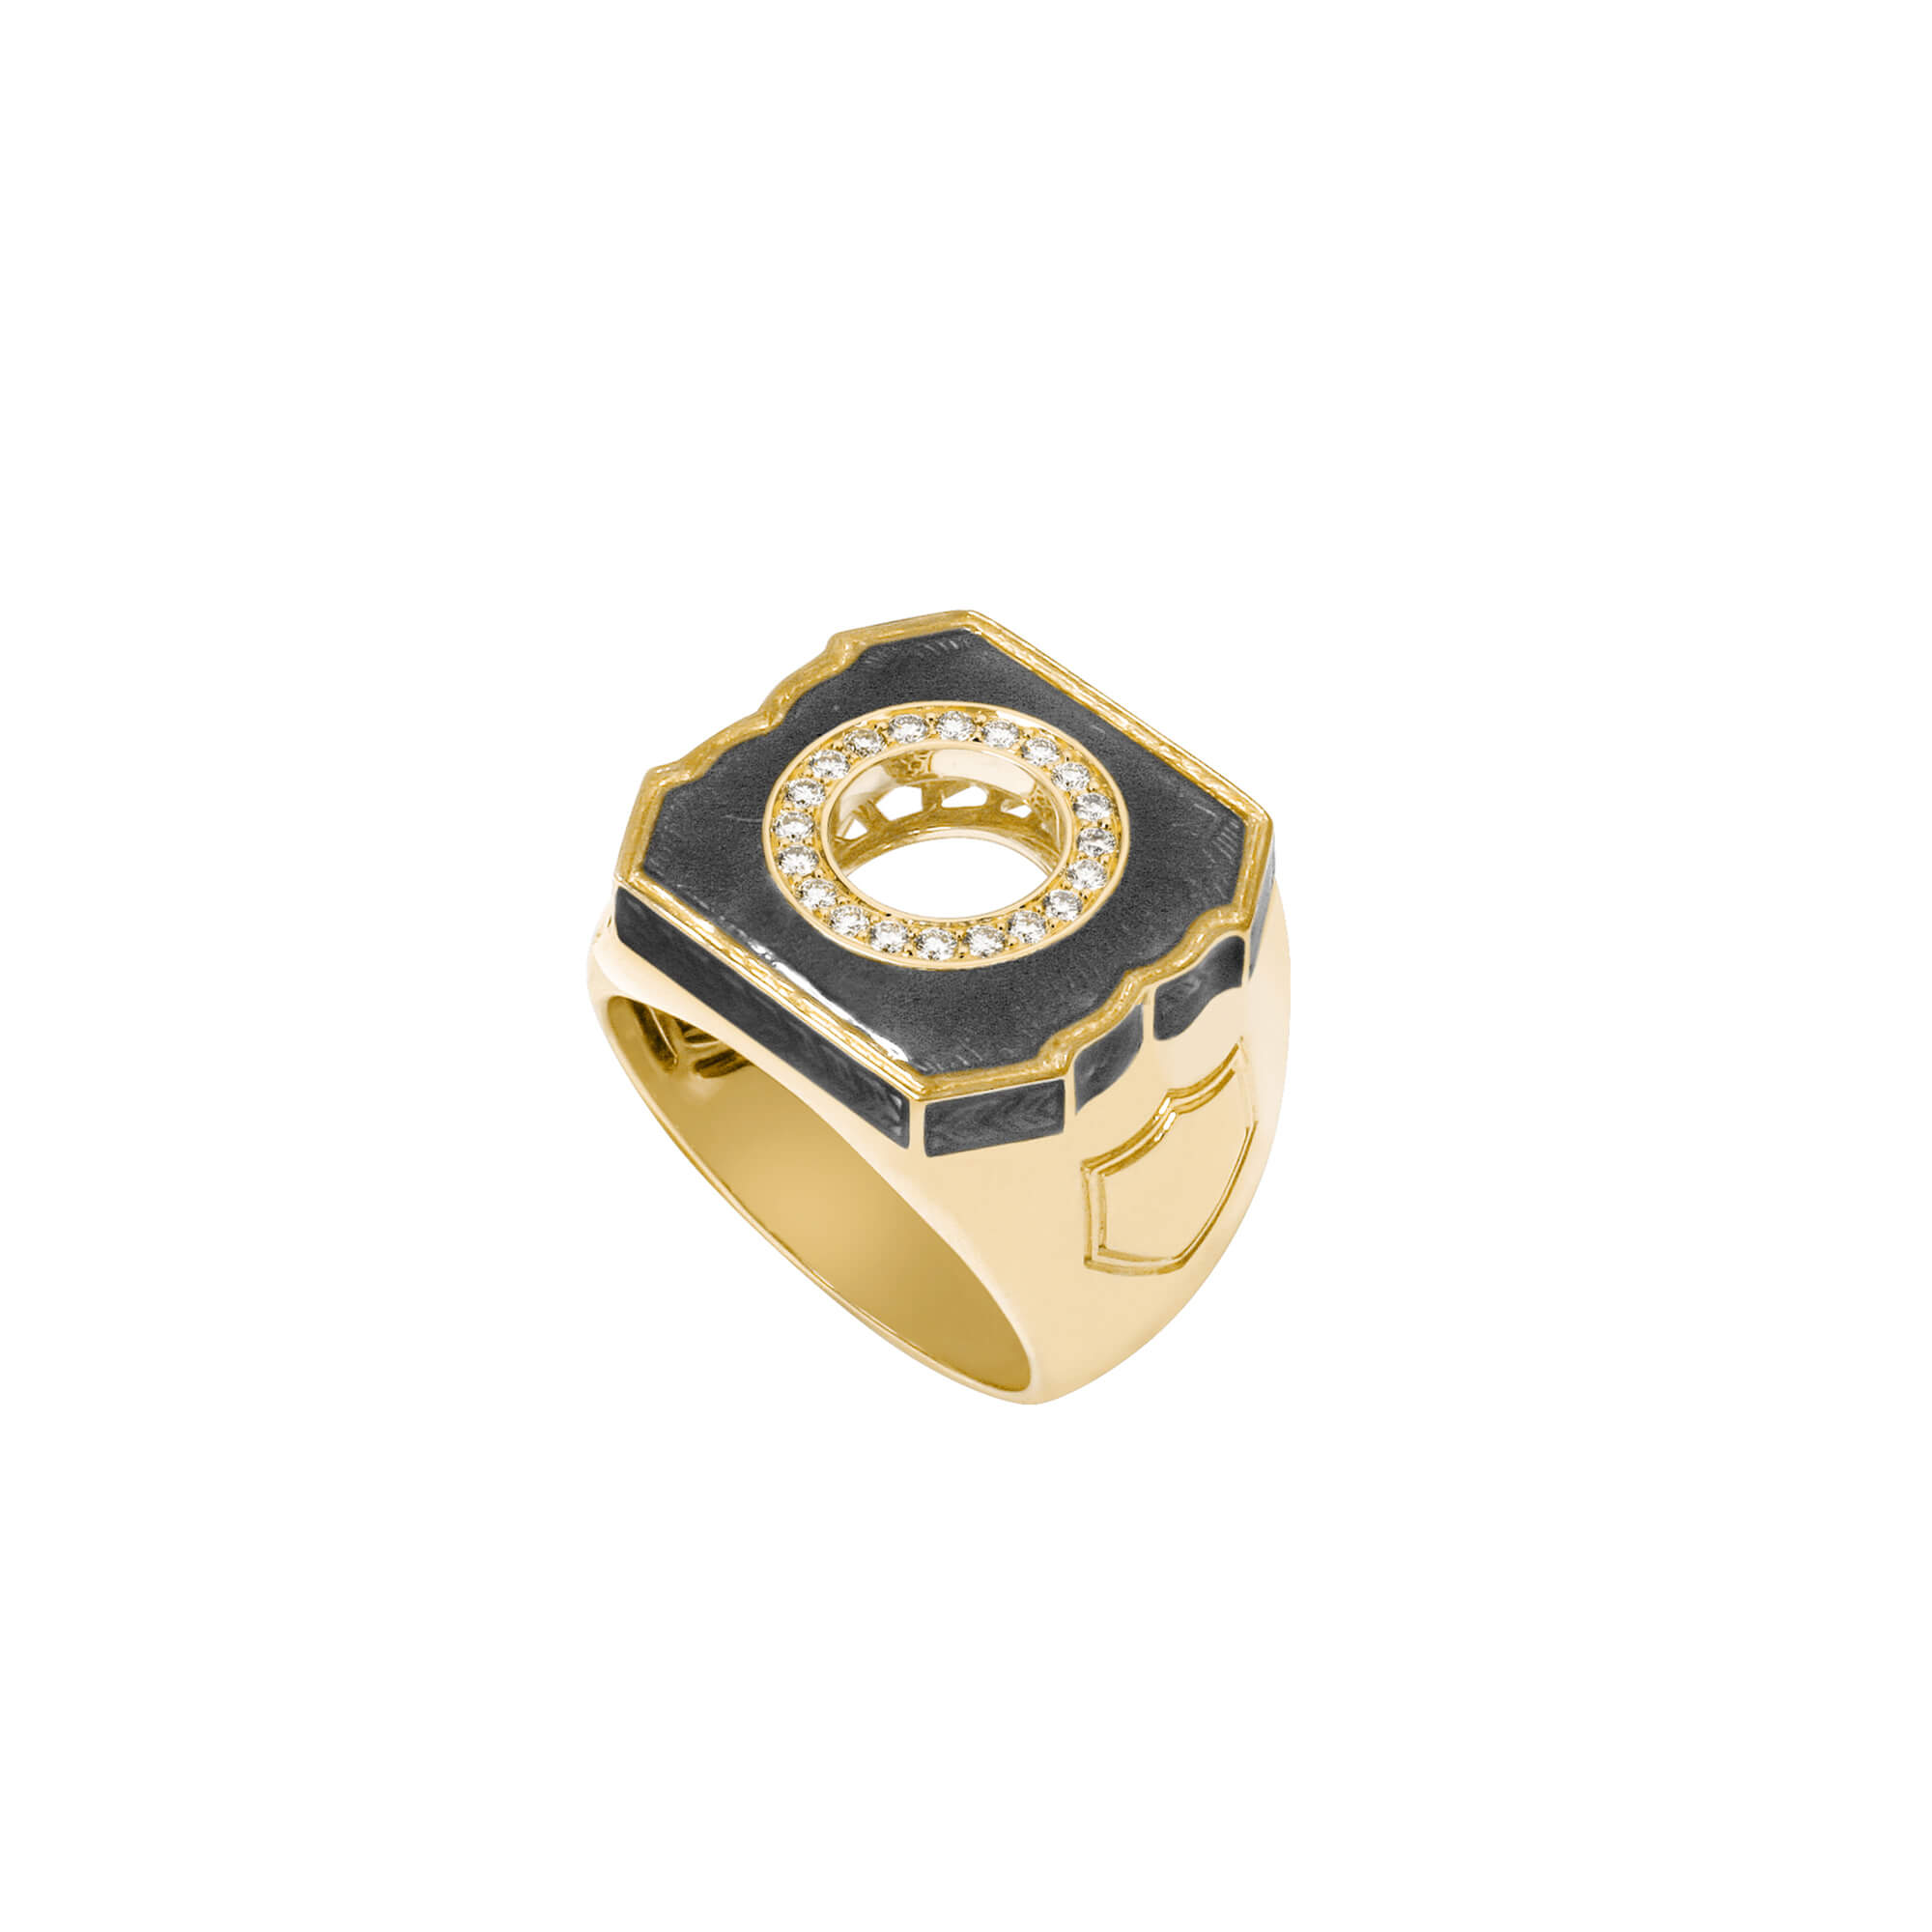 Men's Black and Gold Ring | England Made Me